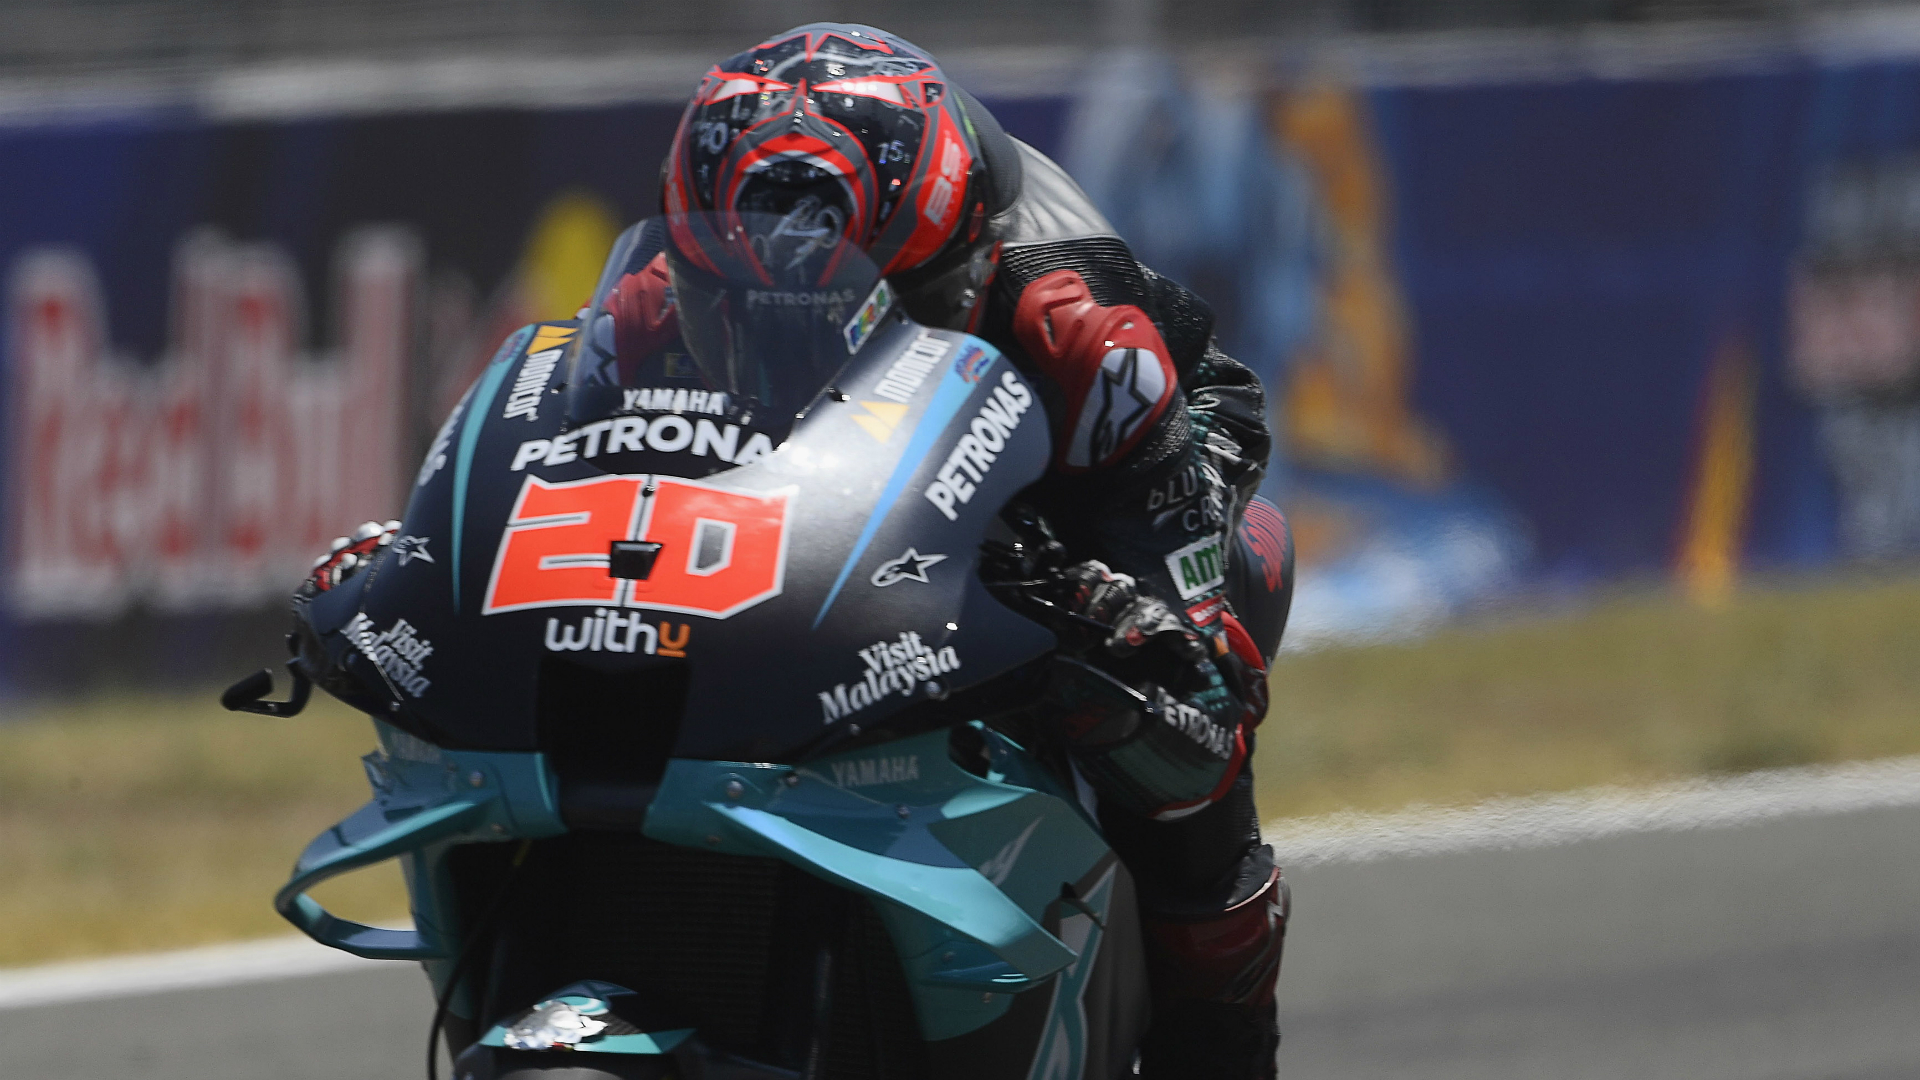 MotoGP 2020: Quartararo finally turns pole into victory as Marquez injured